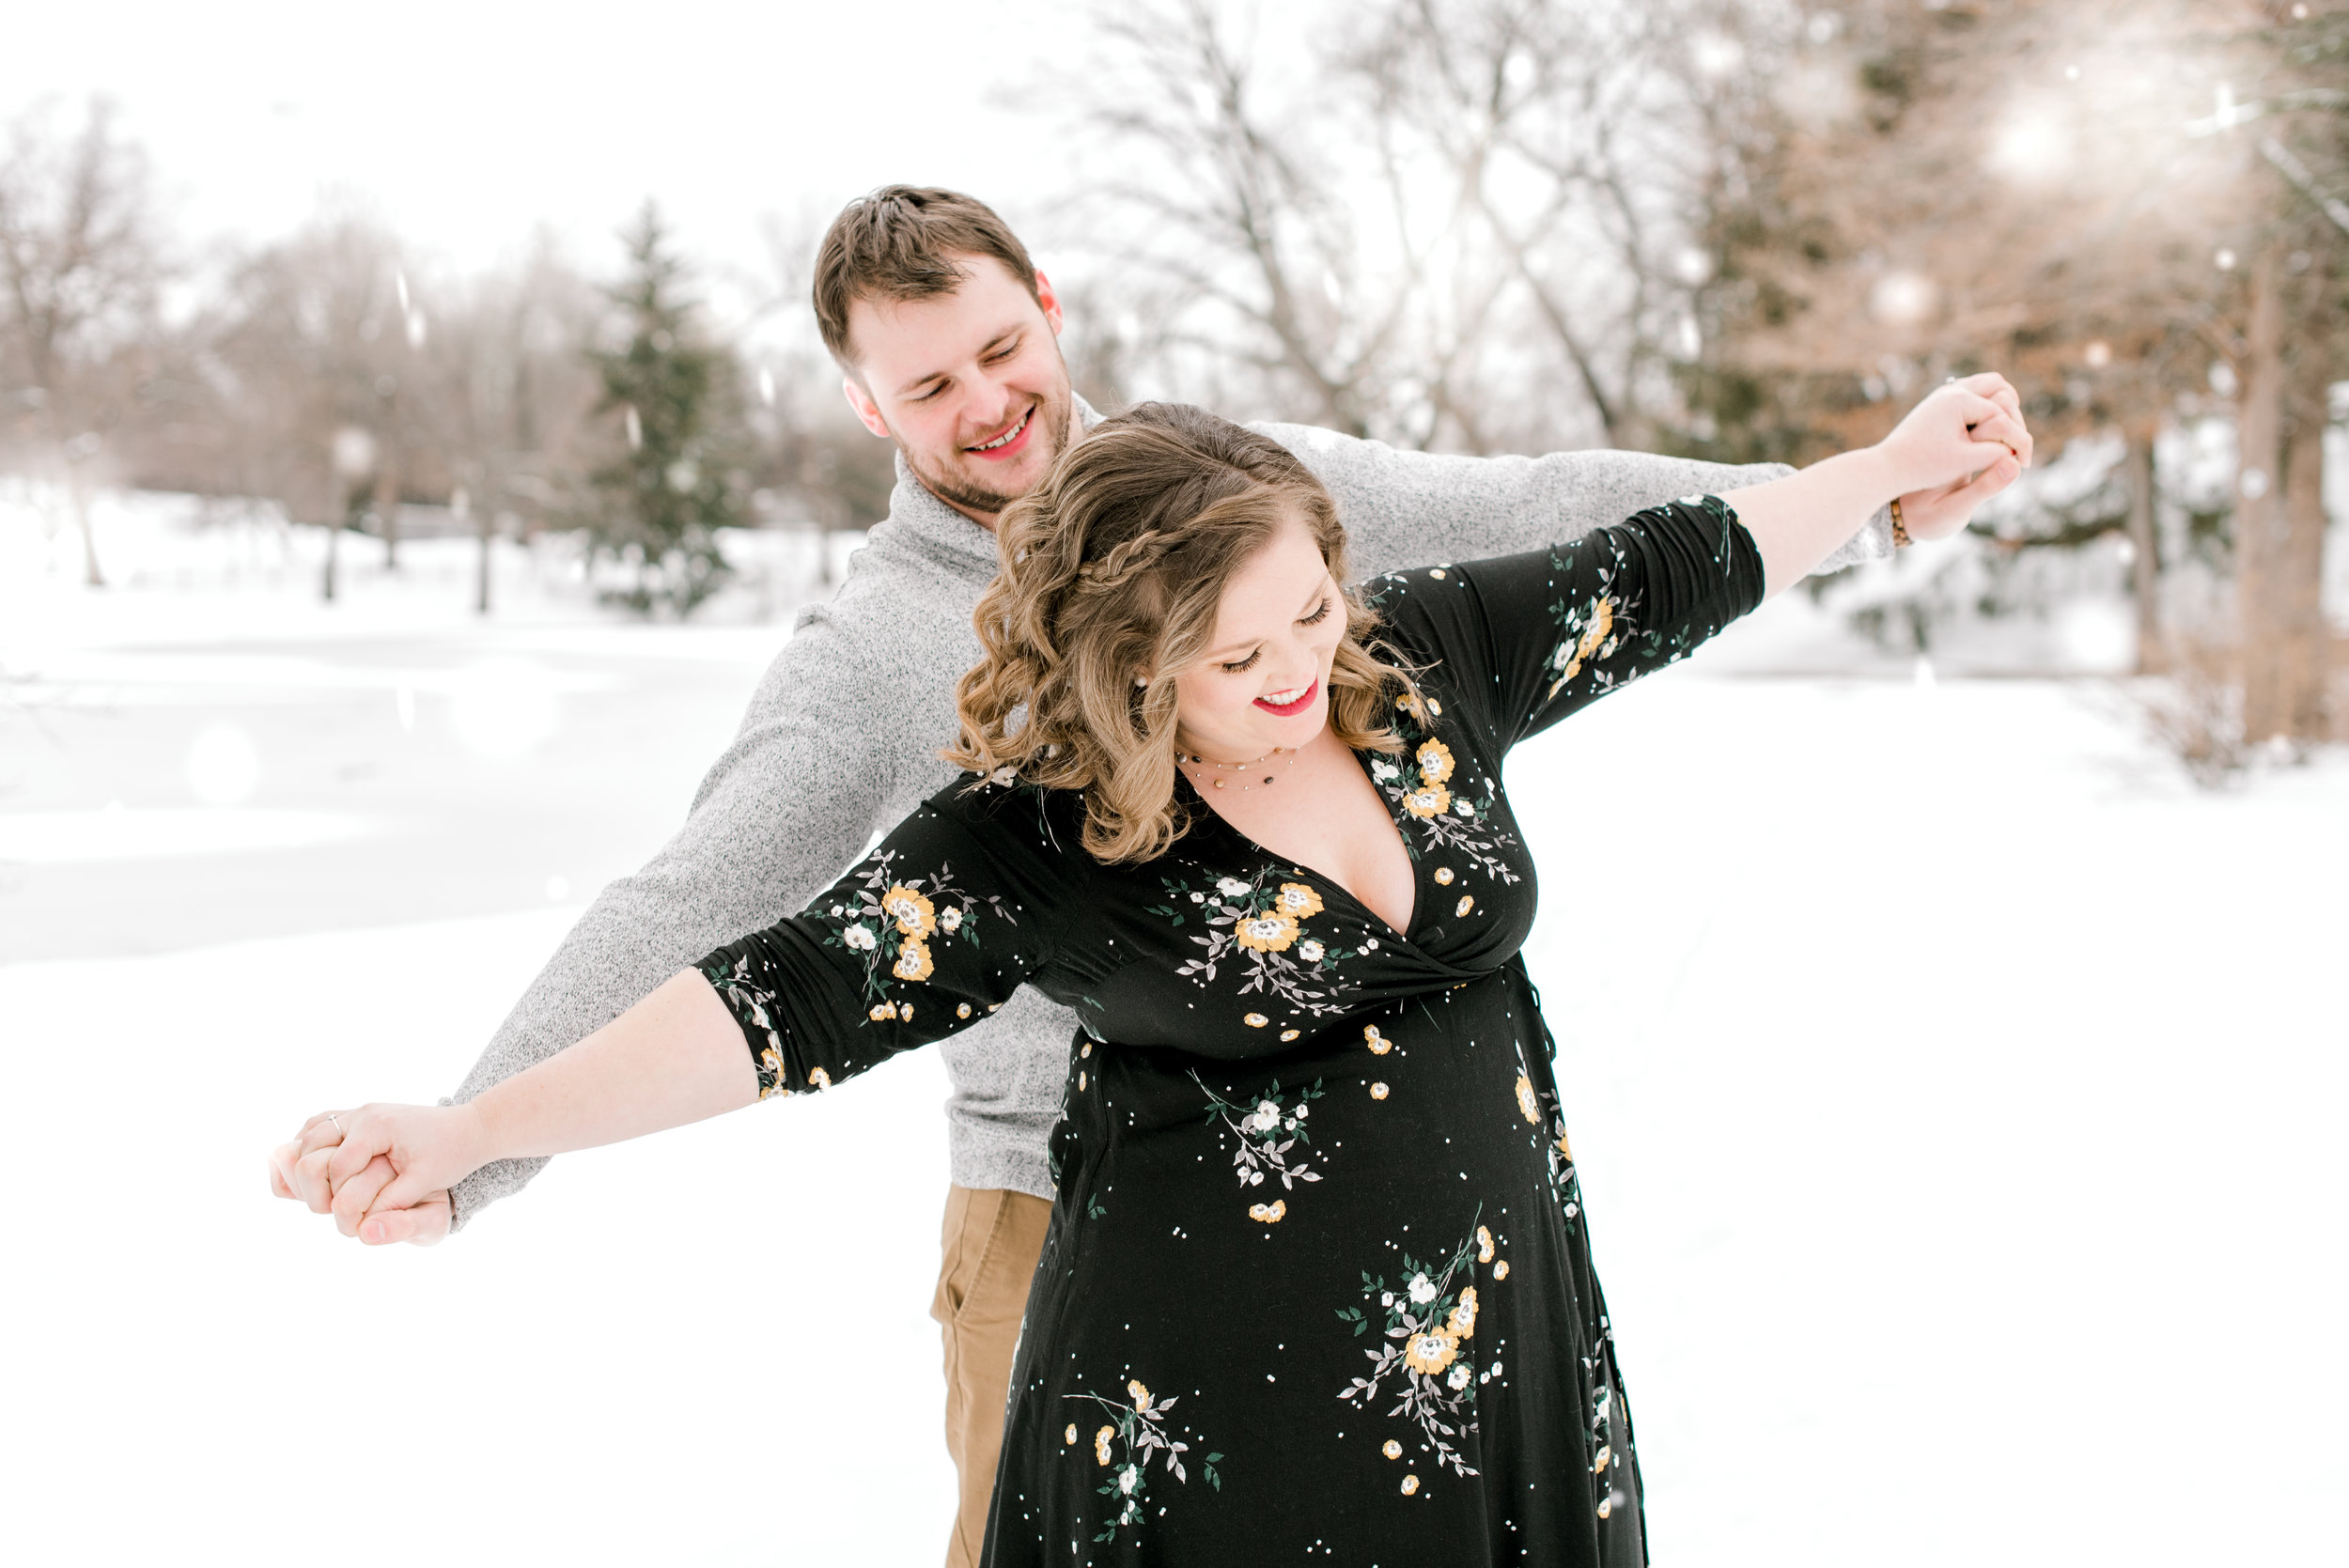 1march2019-roger-williams-park-snow-engagement-session-8.jpg